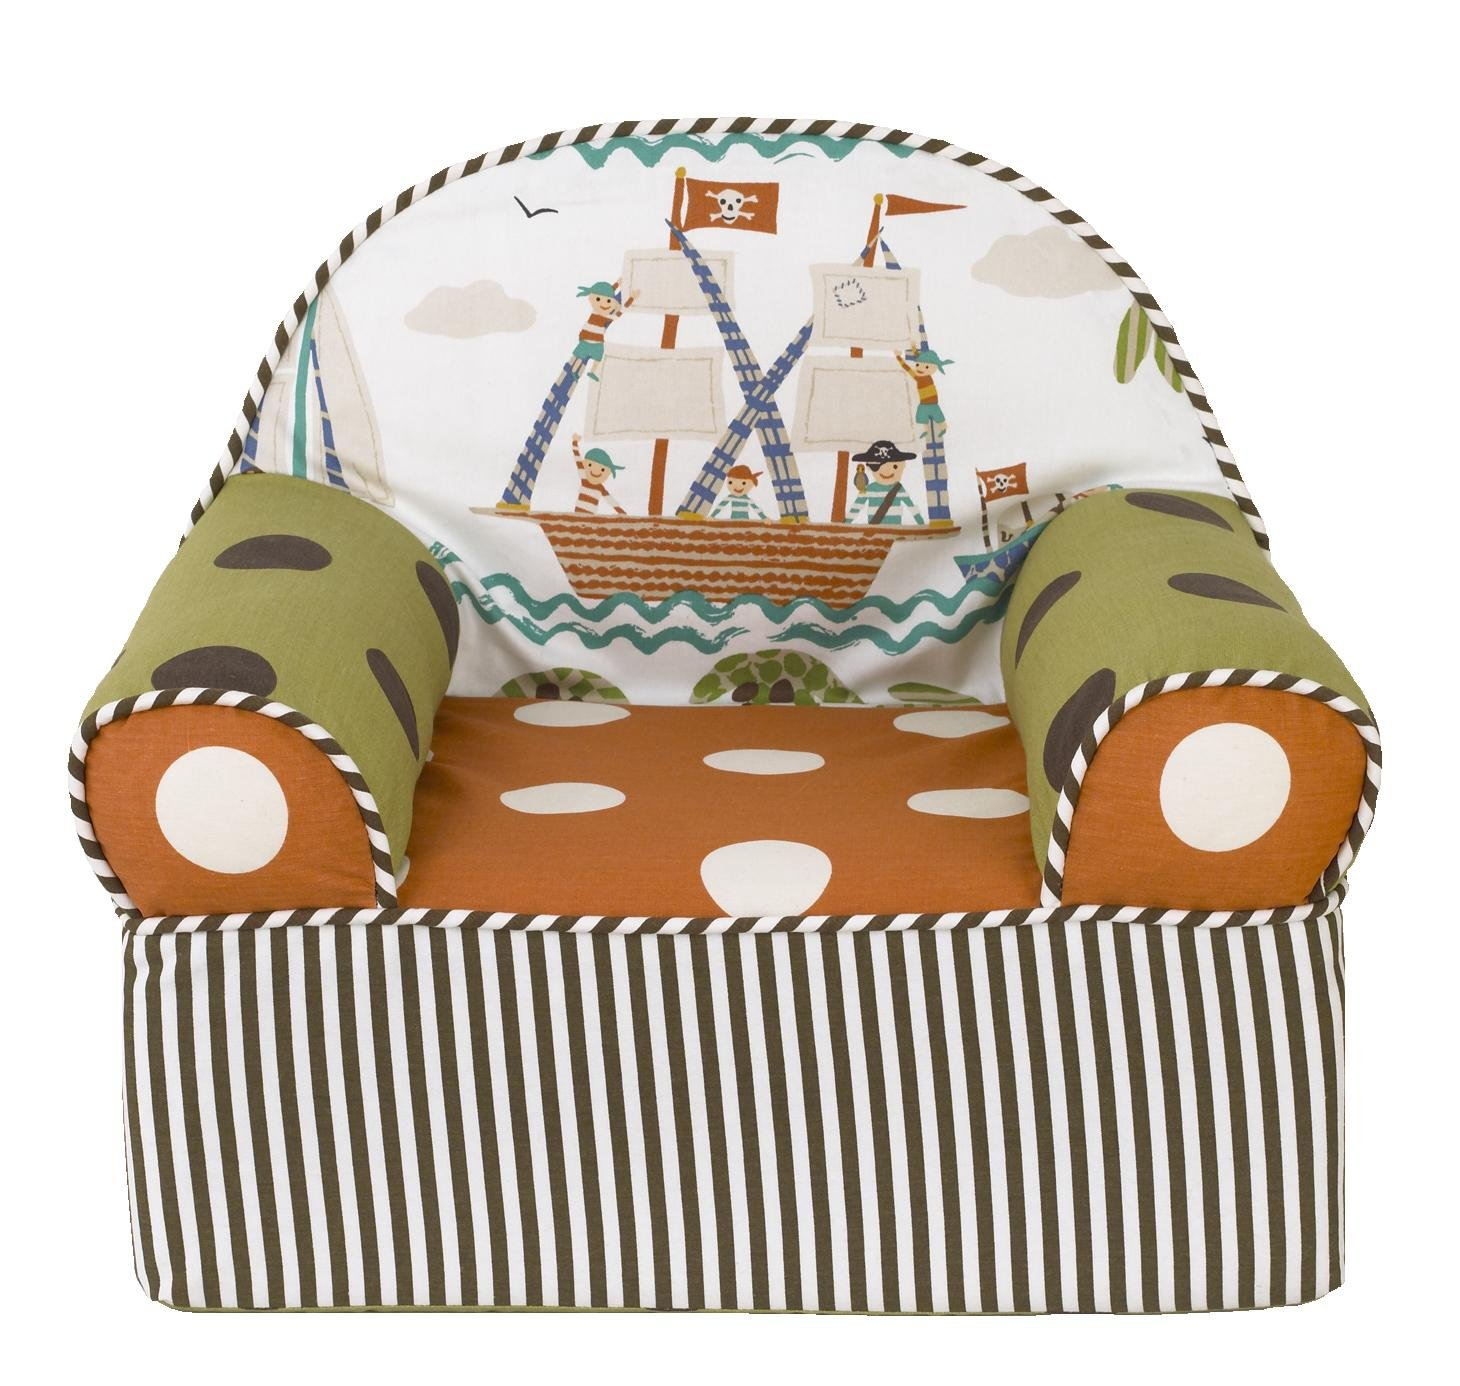 Cotton Tale Designs Baby's 1st Chair, Nightingale NGCH